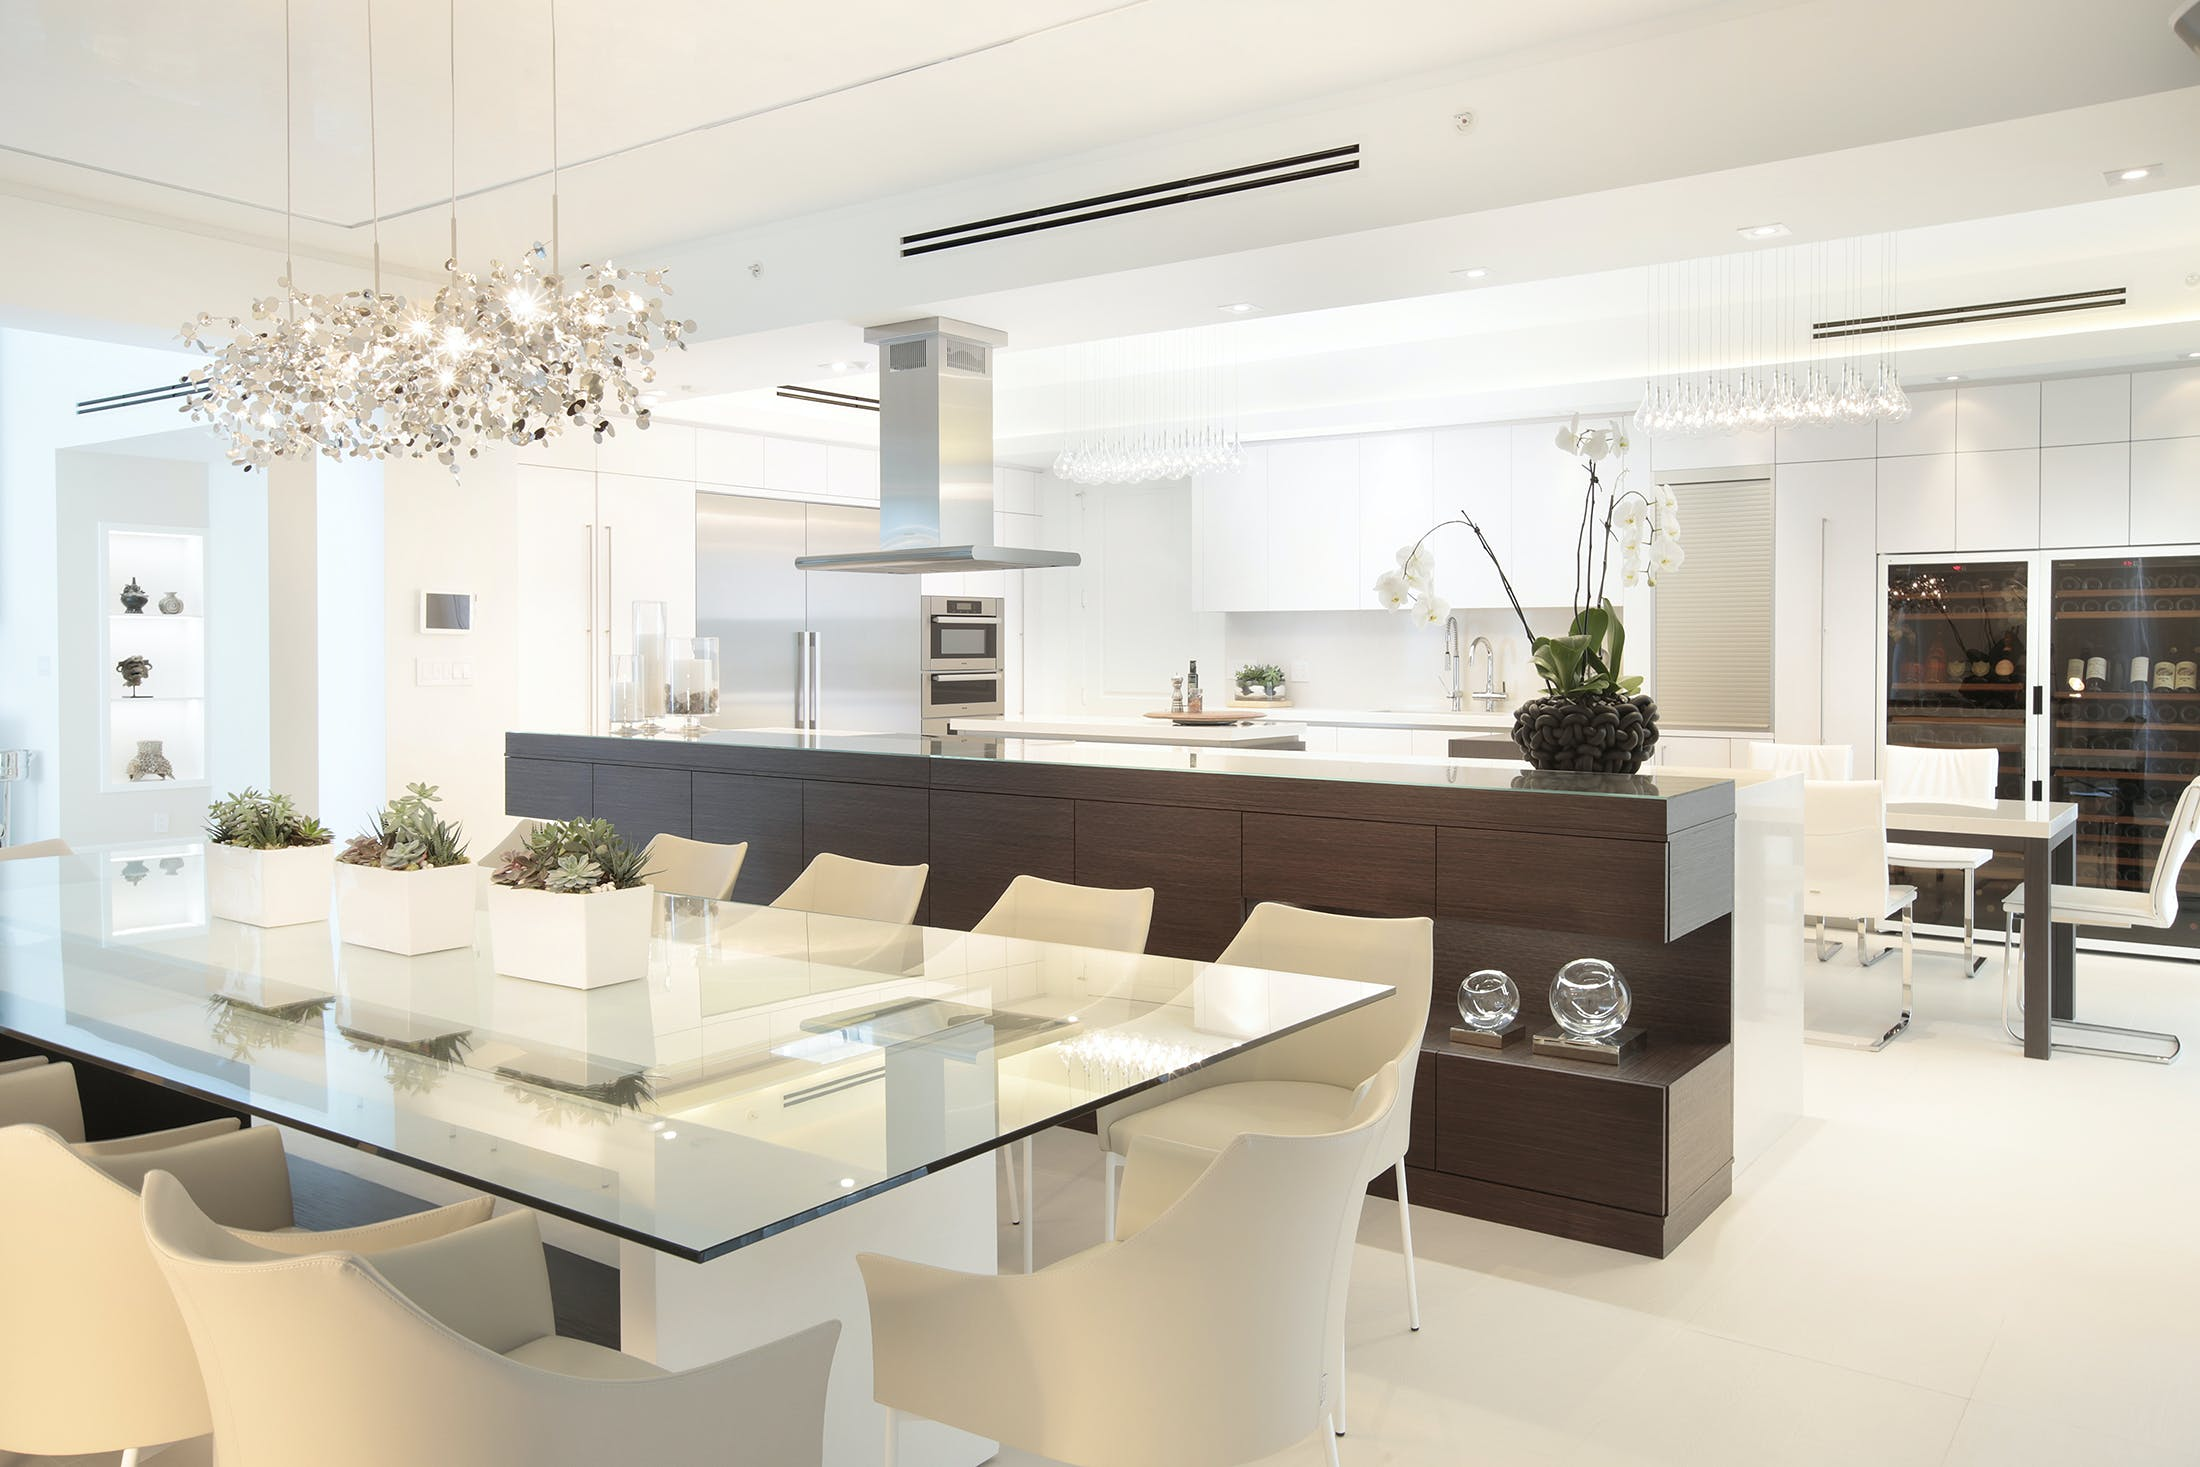 Waterfront Penthouse | DKOR Interiors Inc. | Archinect